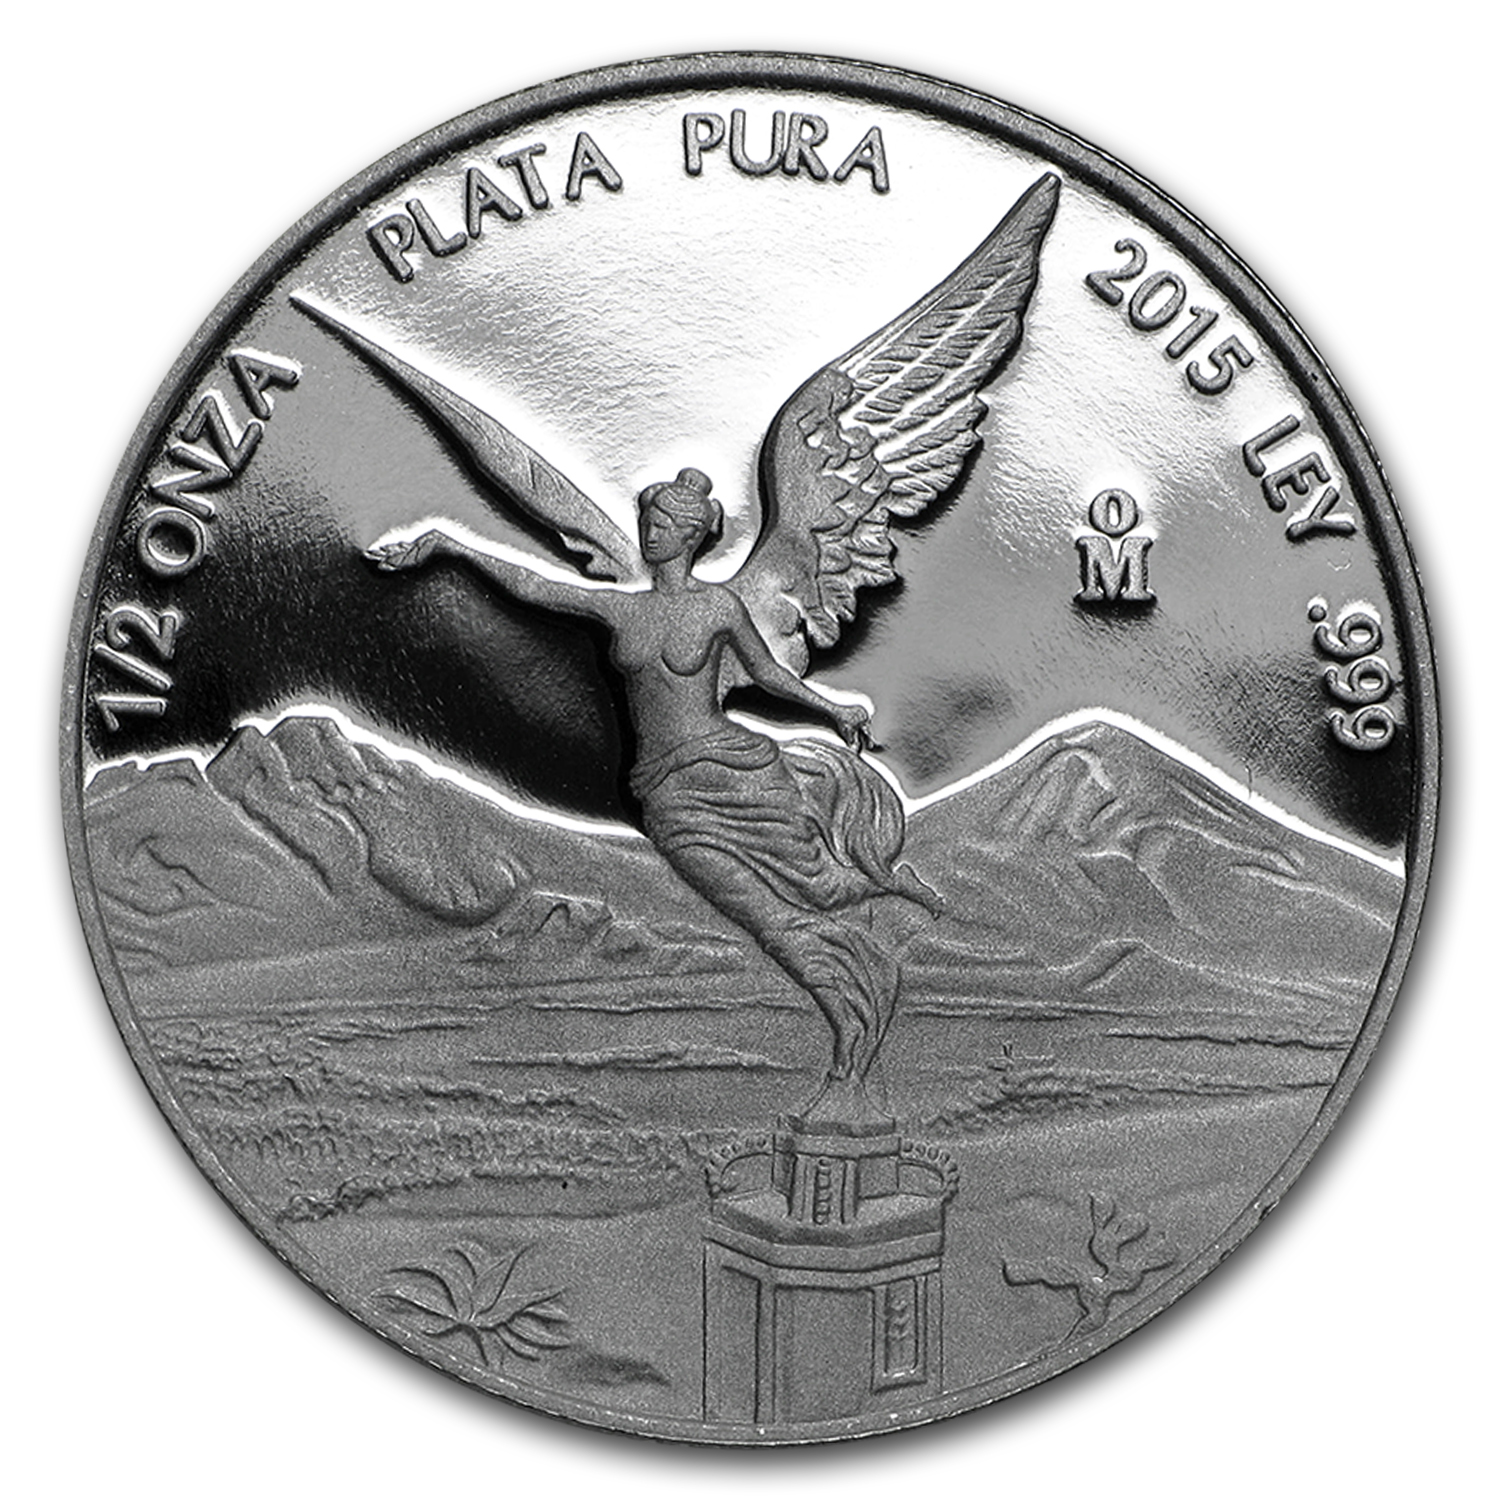 2015 Mexico 1/2 oz Silver Libertad Proof (In Capsule)